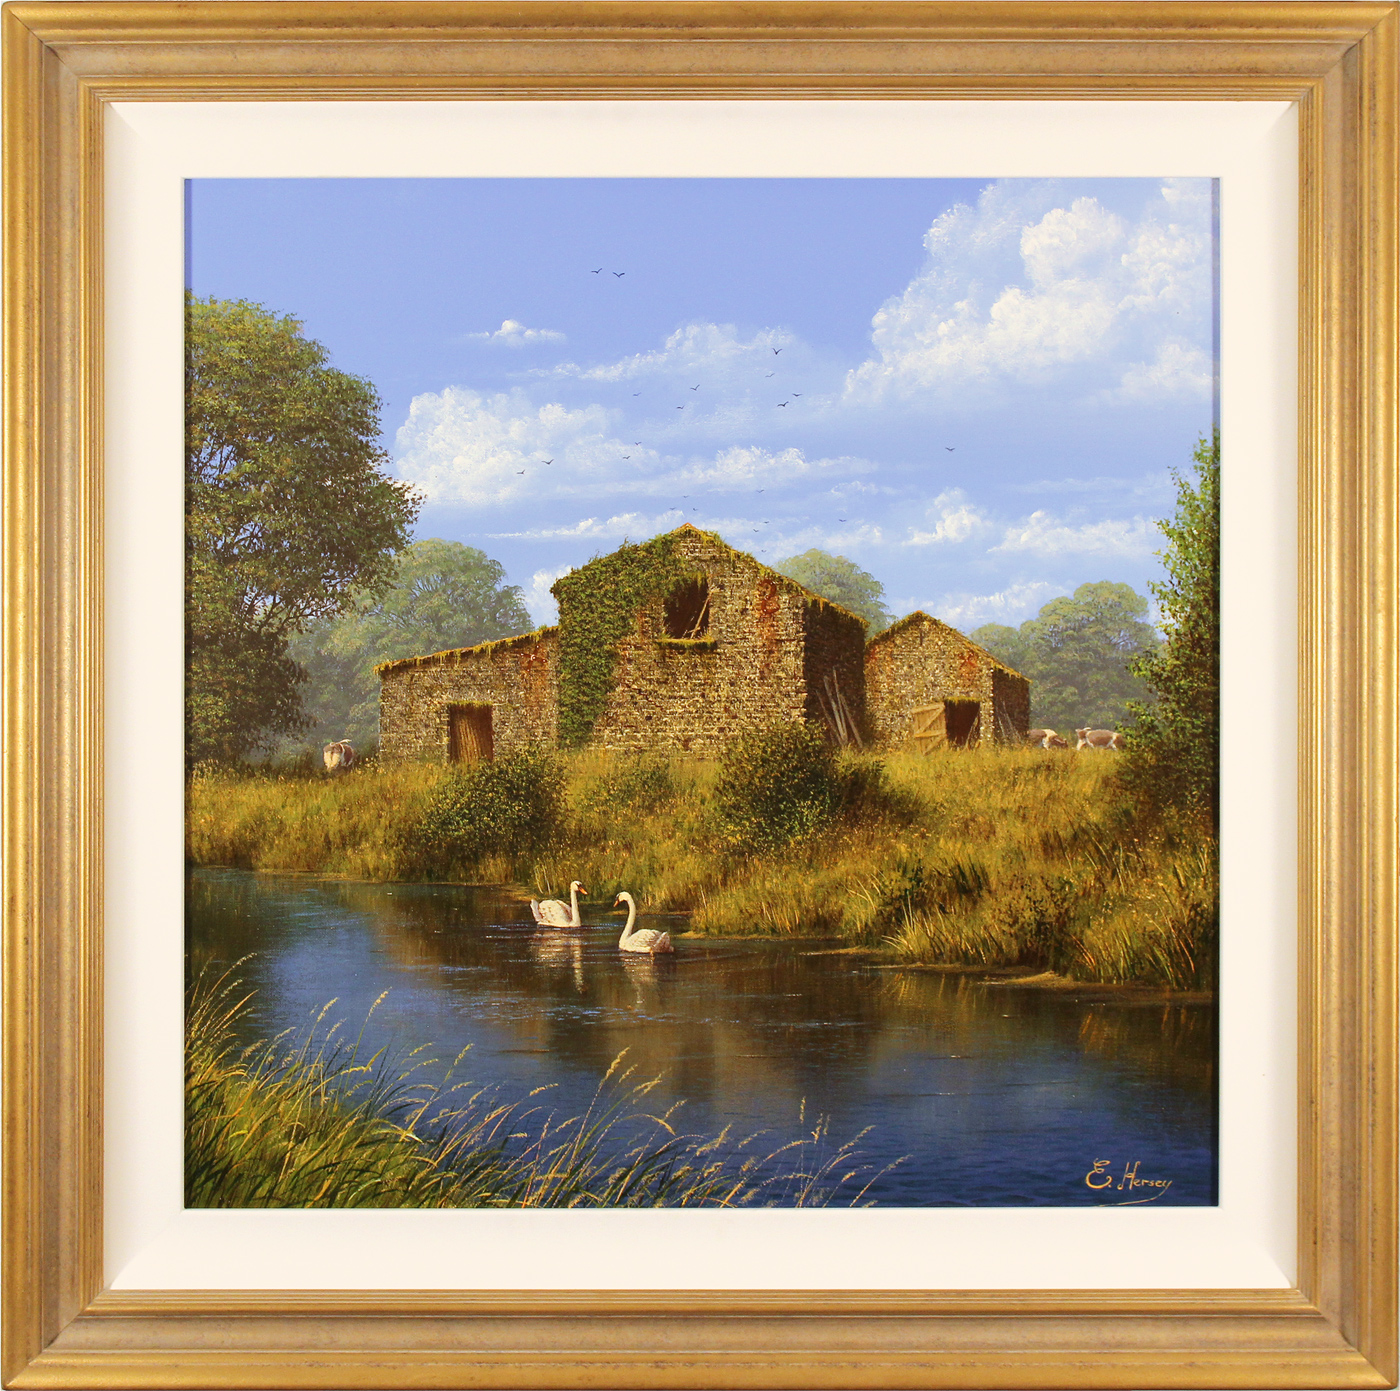 Edward Hersey, Original oil painting on canvas, Summer Graces. Click to enlarge